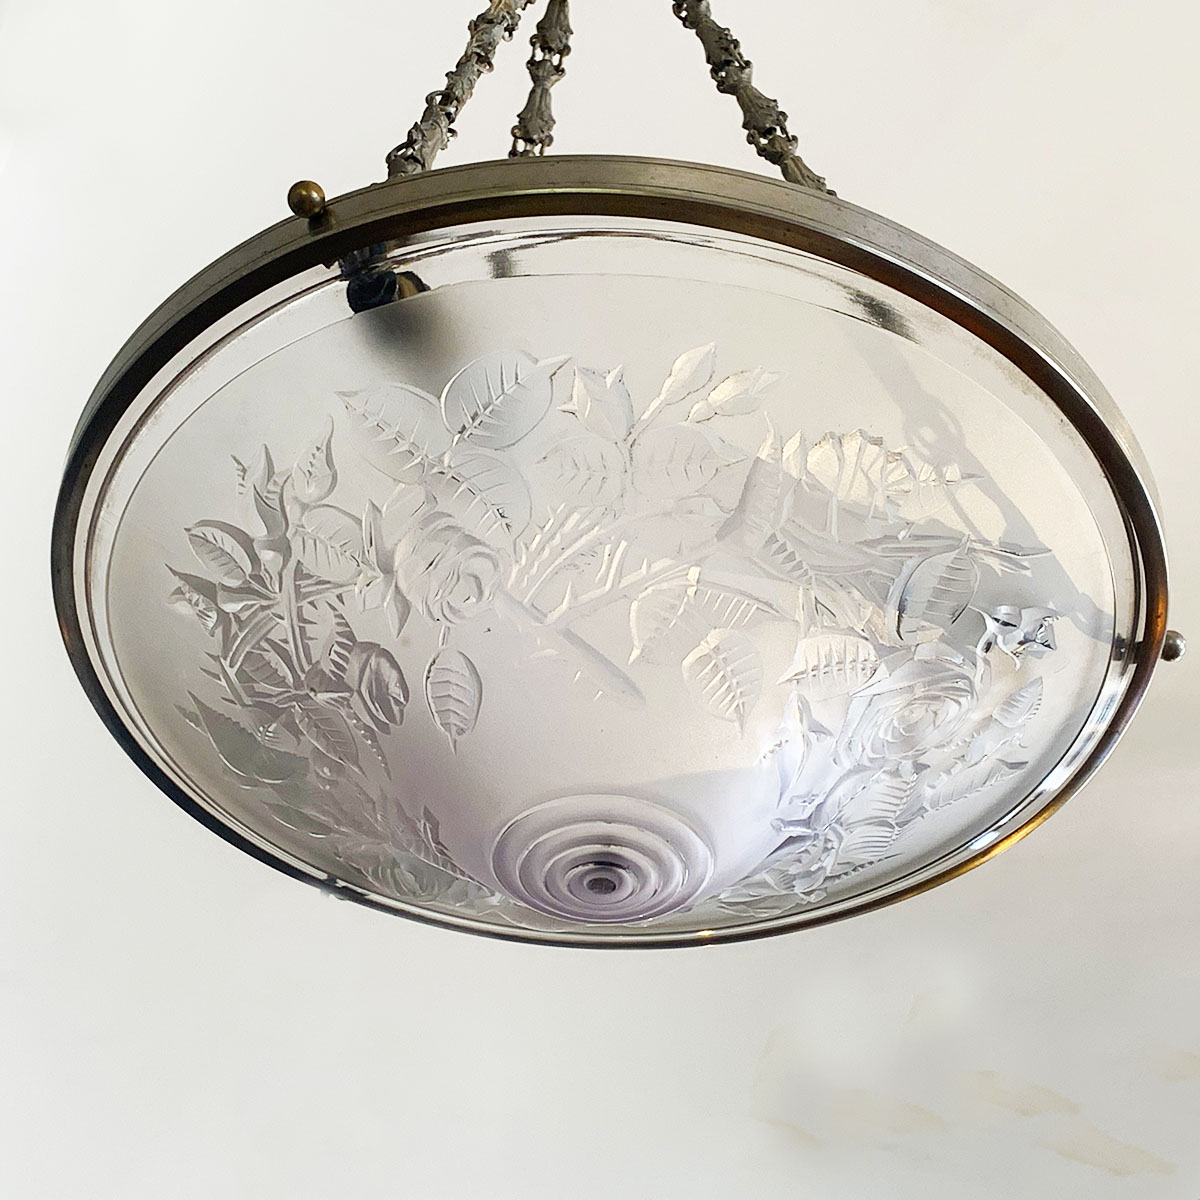 French Art Deco Ceiling Light Plafonnier By Maynadier Artedeco Online Antiques